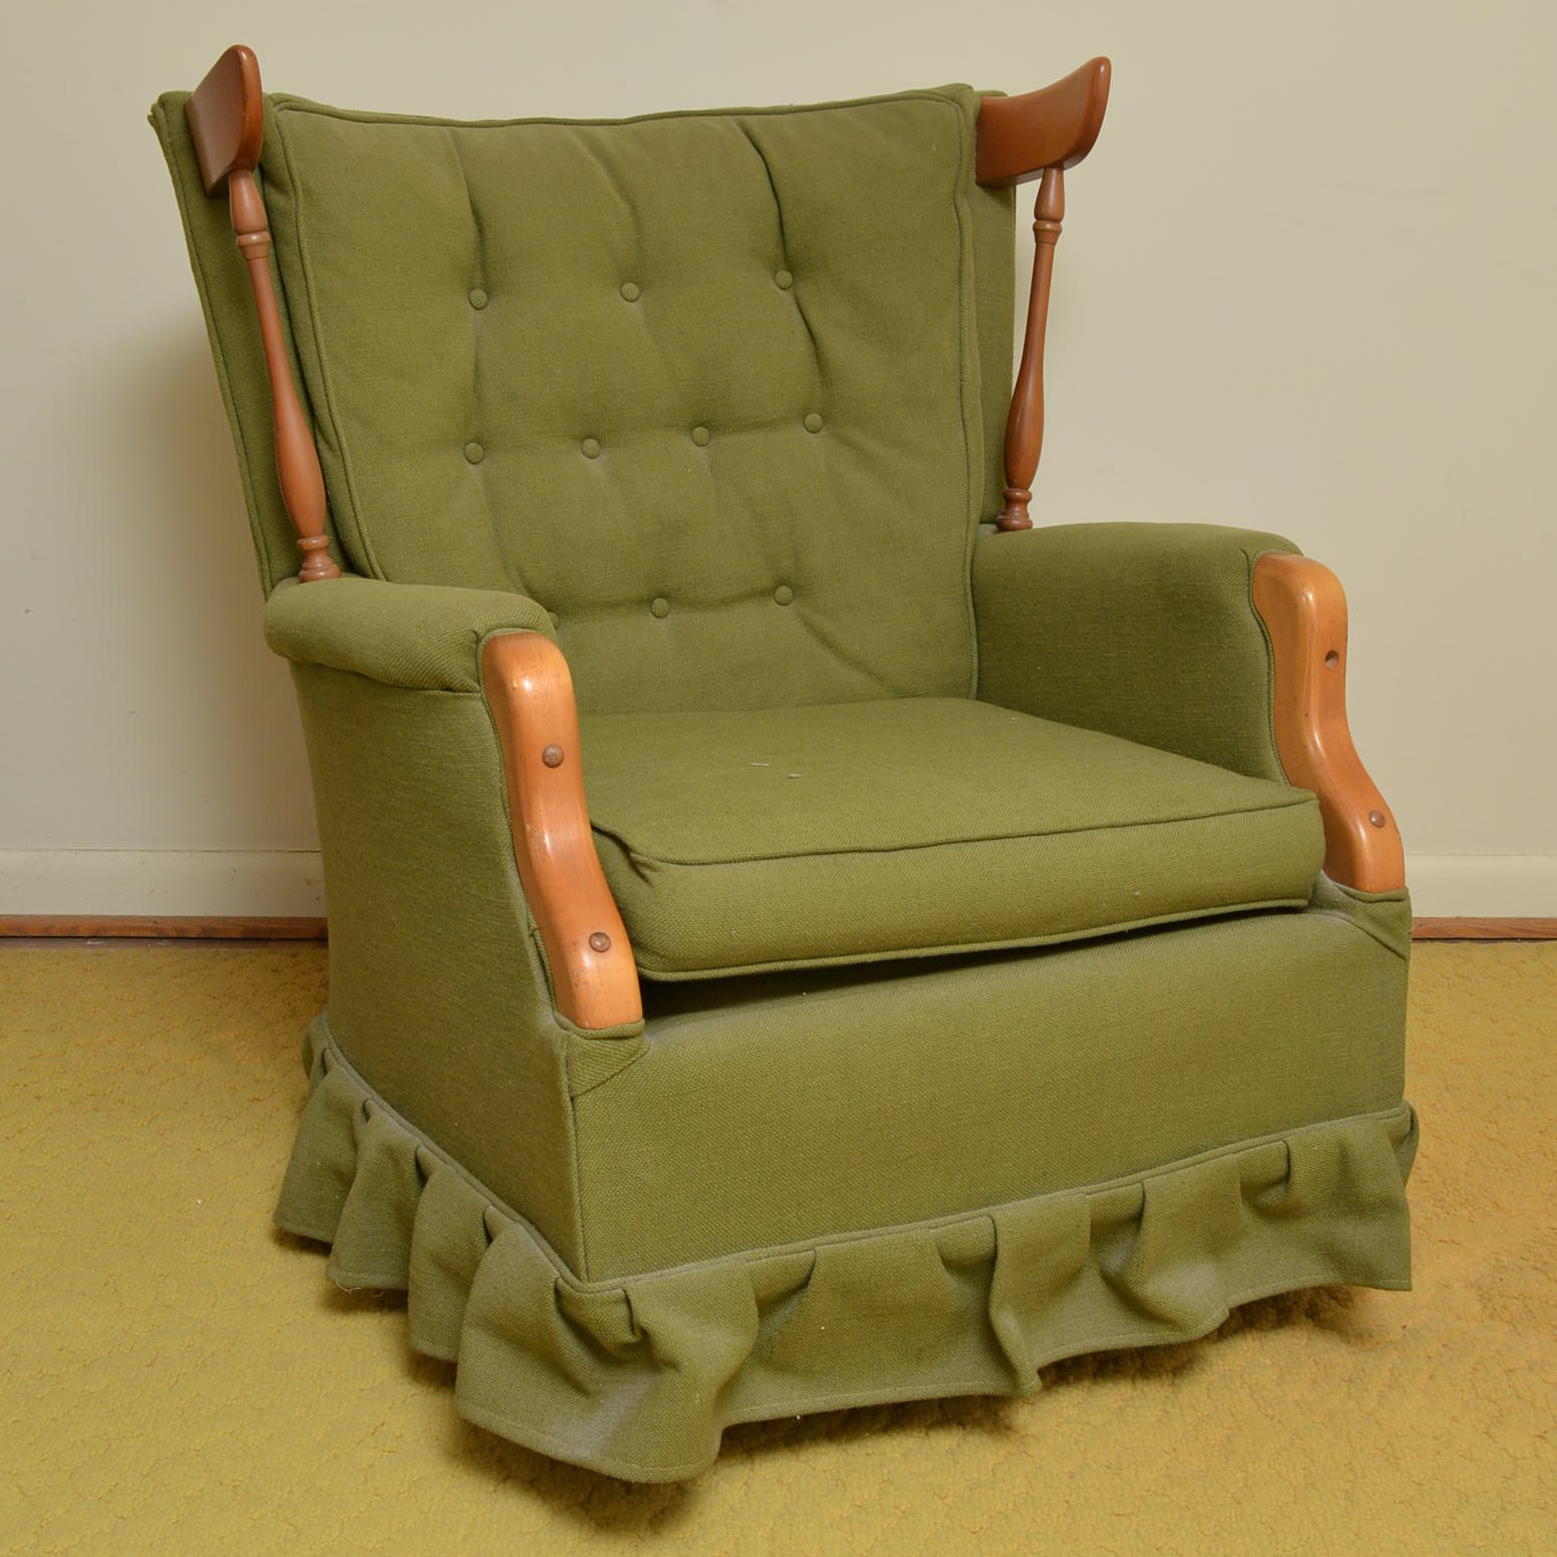 Upholstered Burris Rocking Chair